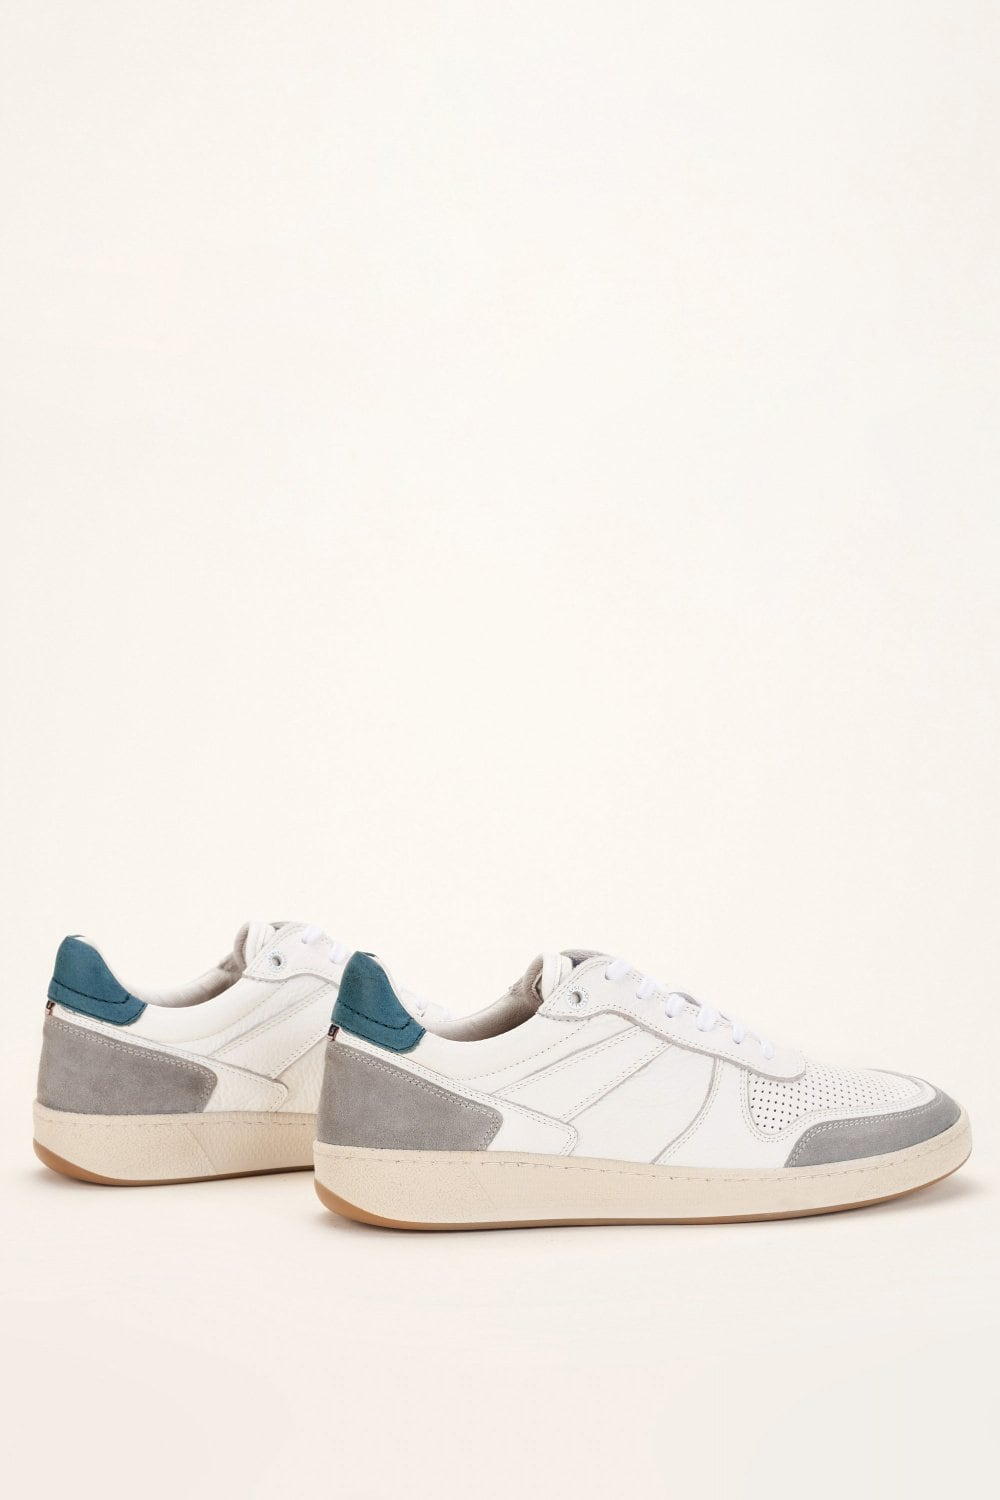 Unisex leather trainer - Salsa